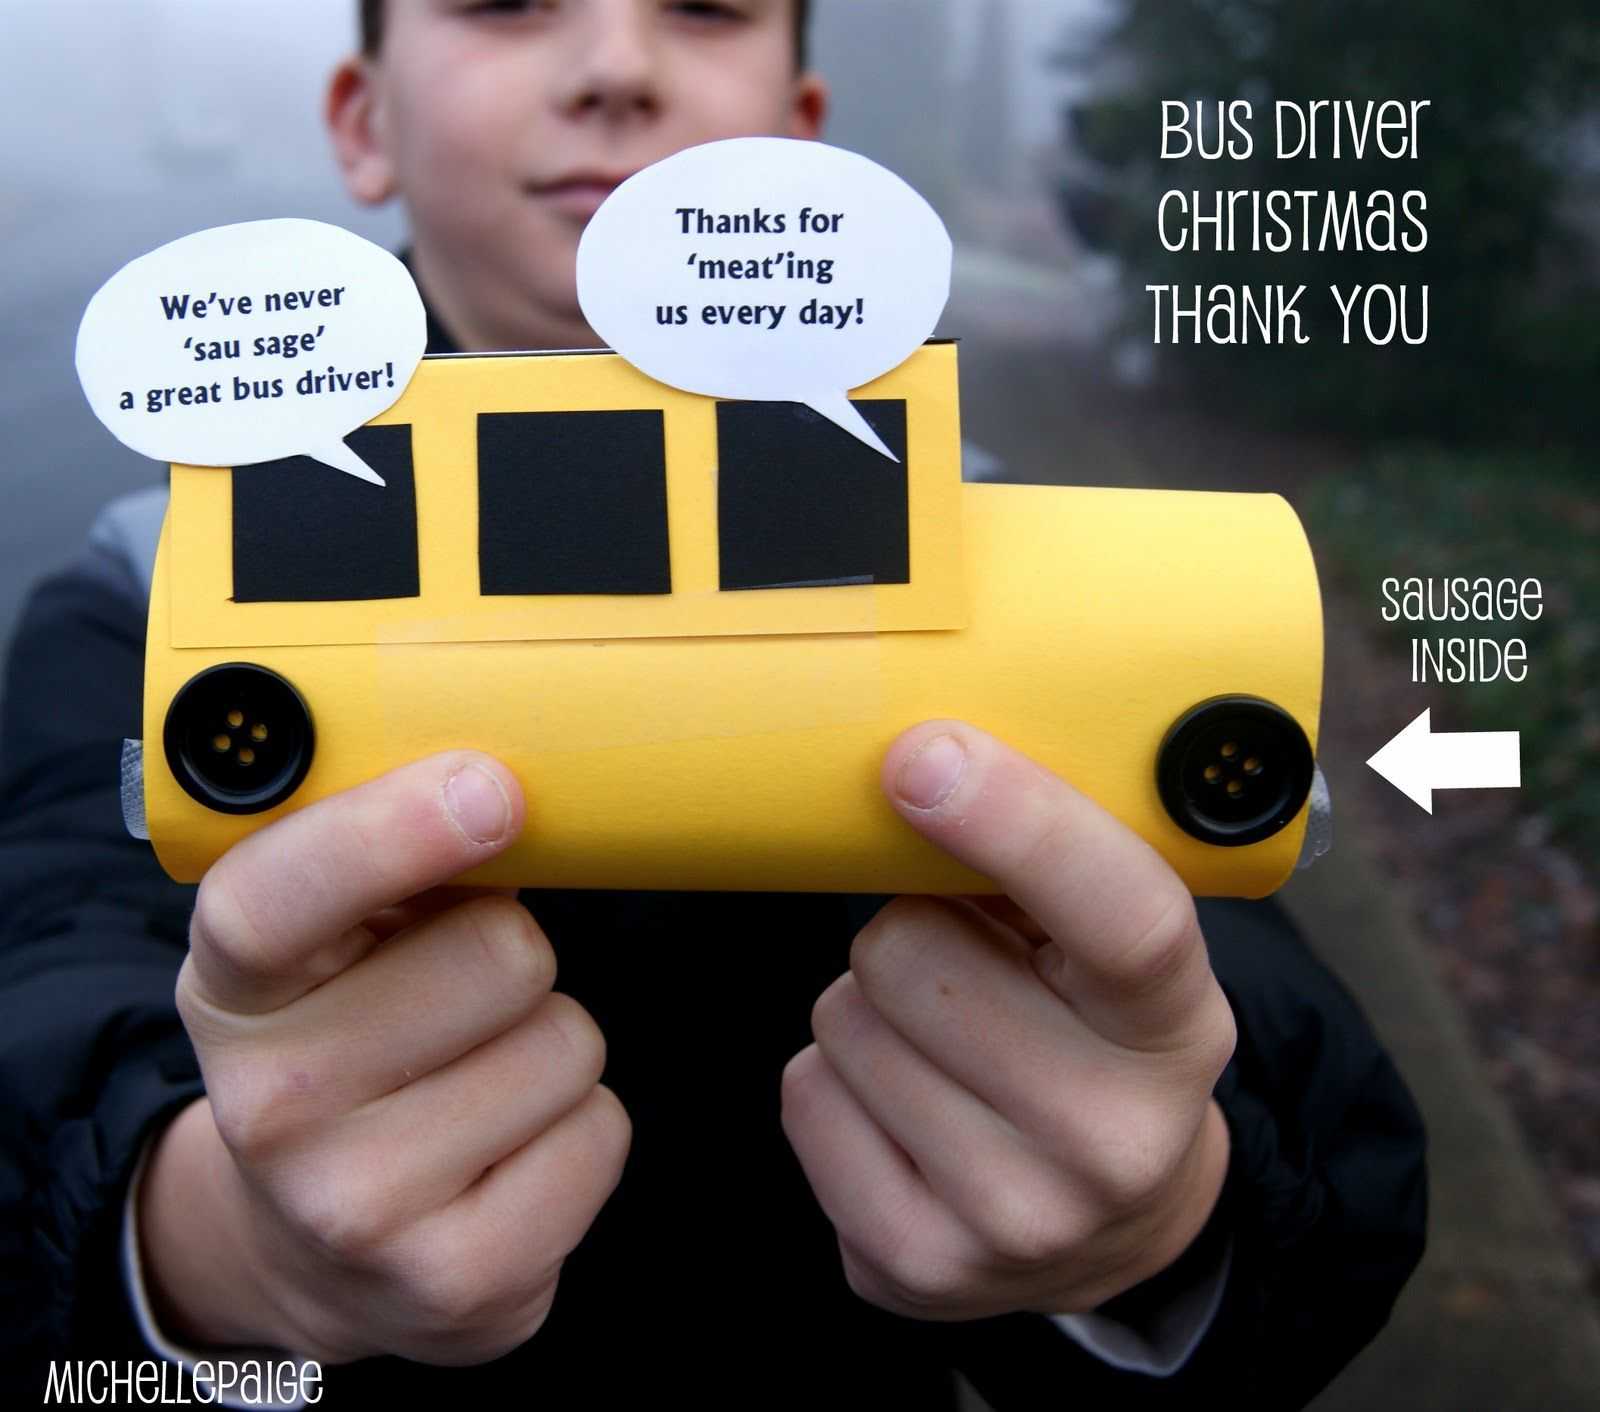 Michelle paige bus driver christmas gift christmas pinterest michelle paige bus driver christmas gift solutioingenieria Image collections